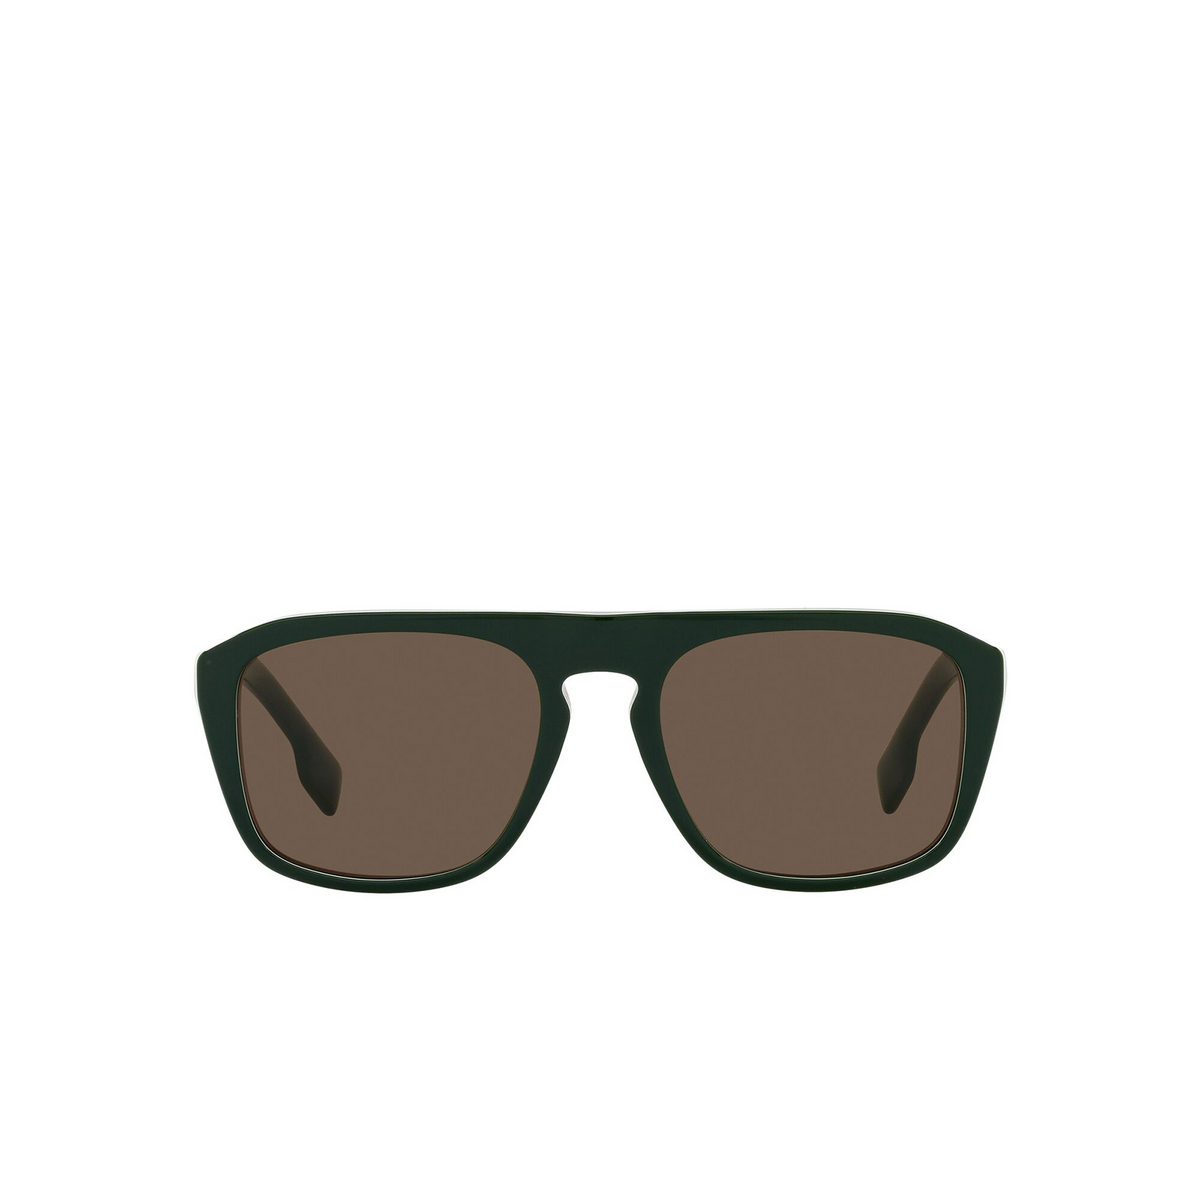 Burberry® Square Sunglasses: BE4286 color Green 392773 - front view.